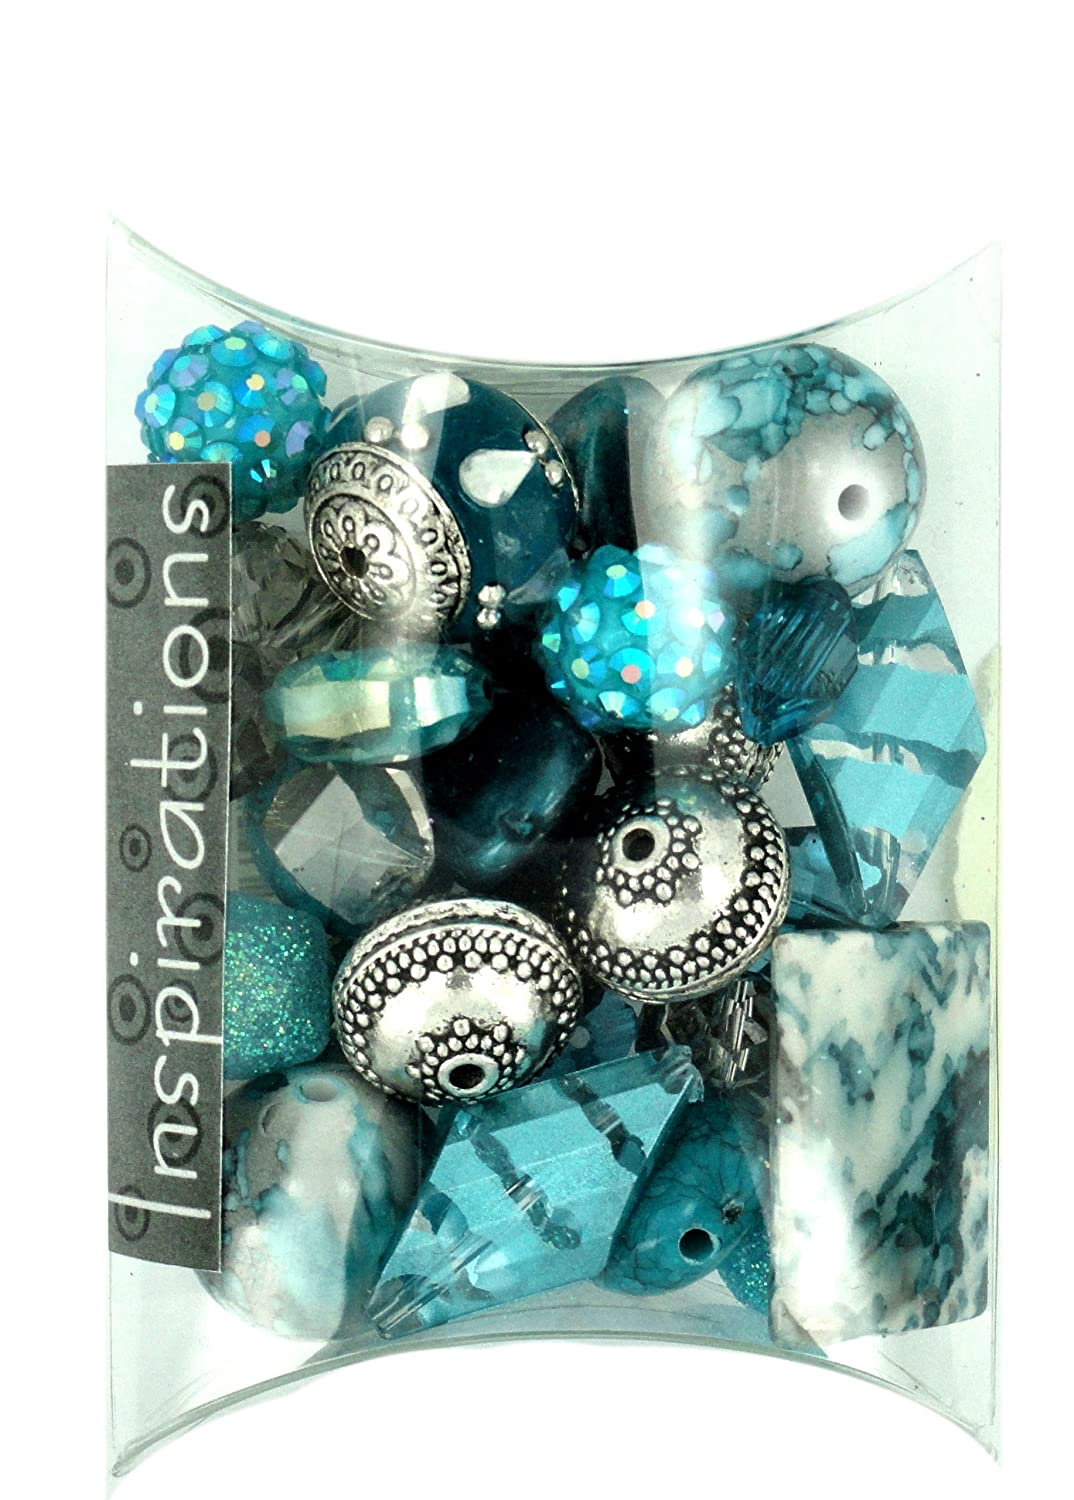 Jesse James Beads Inspirations Beads 50g-Ice Bloom Jesse James & Co. Inc. 5754